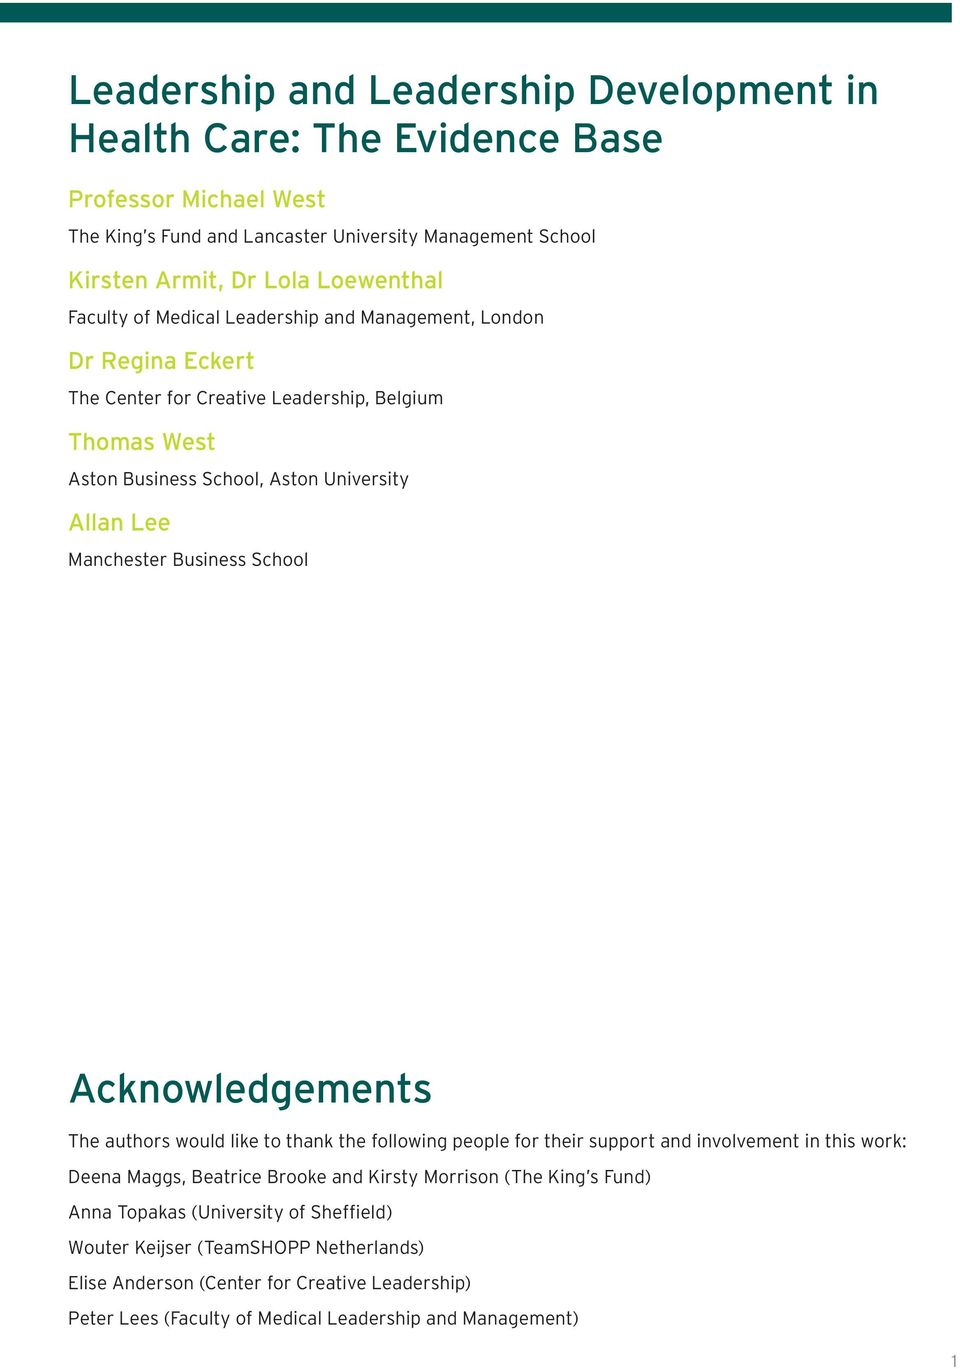 Business School Acknowledgements The authors would like to thank the following people for their support and involvement in this work: Deena Maggs, Beatrice Brooke and Kirsty Morrison (The